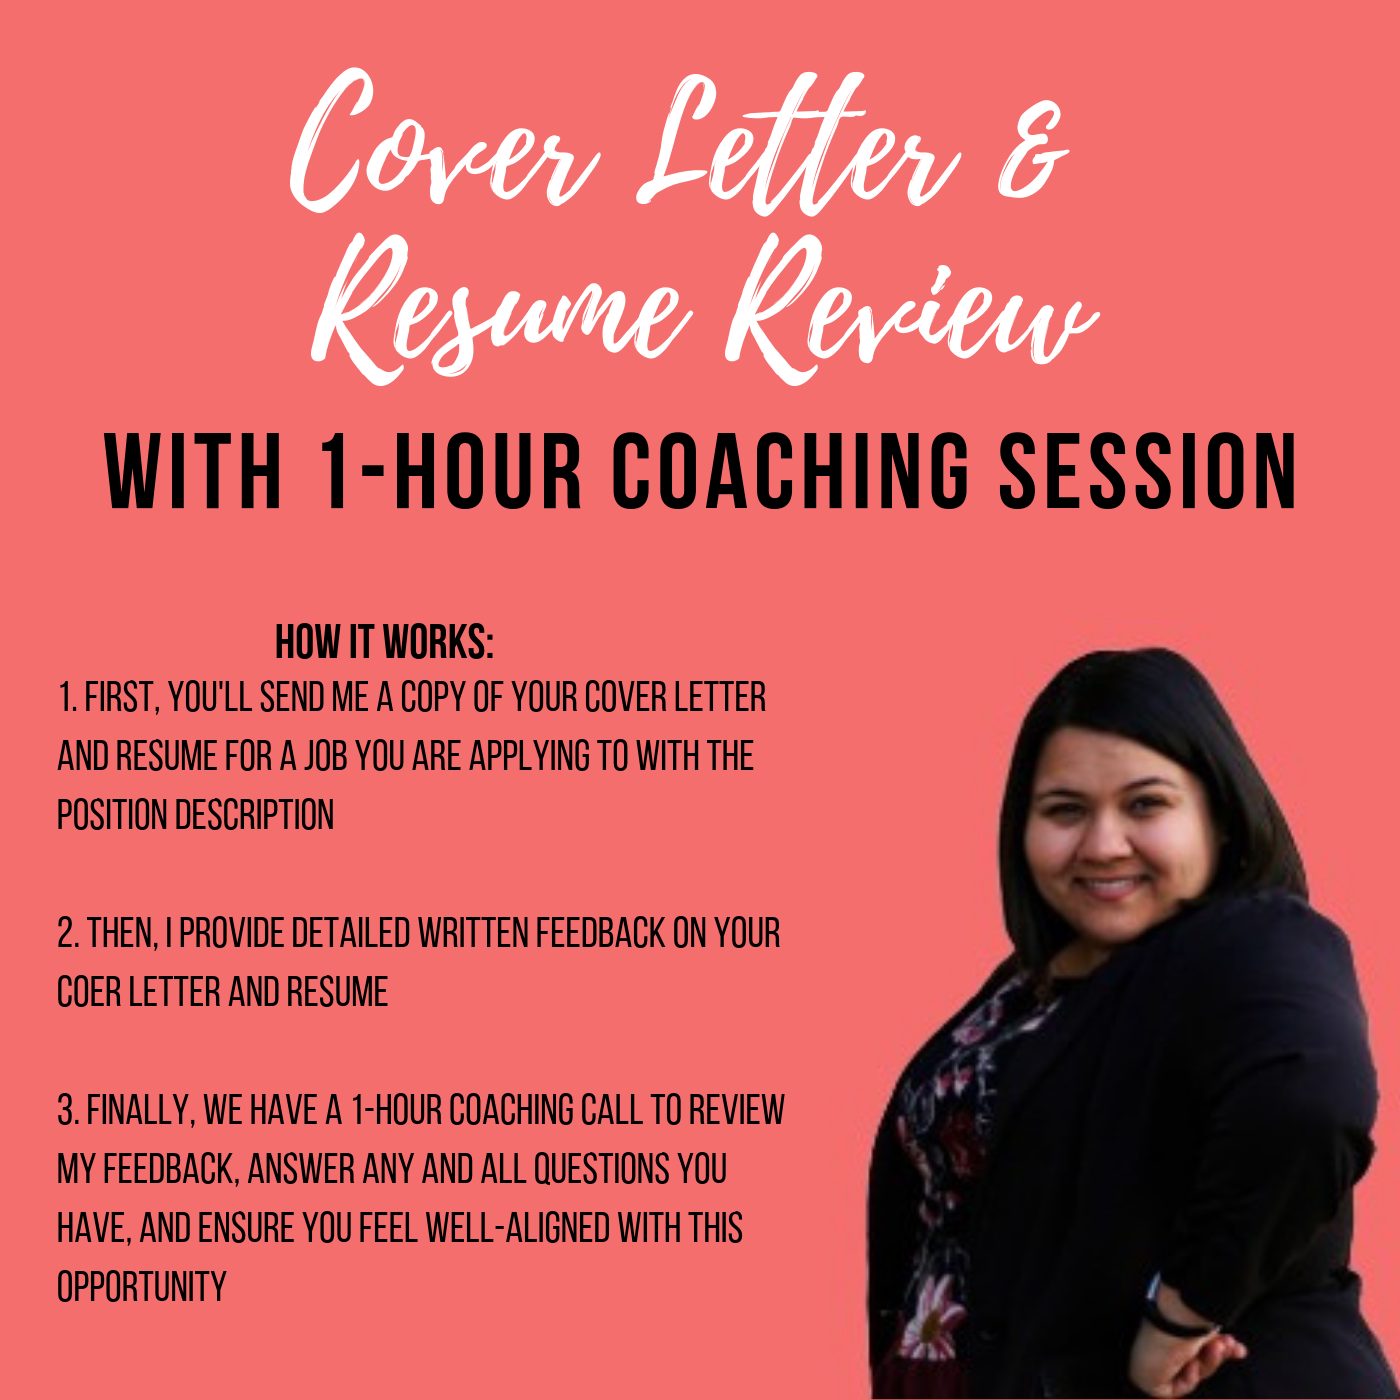 cover letter and resume review